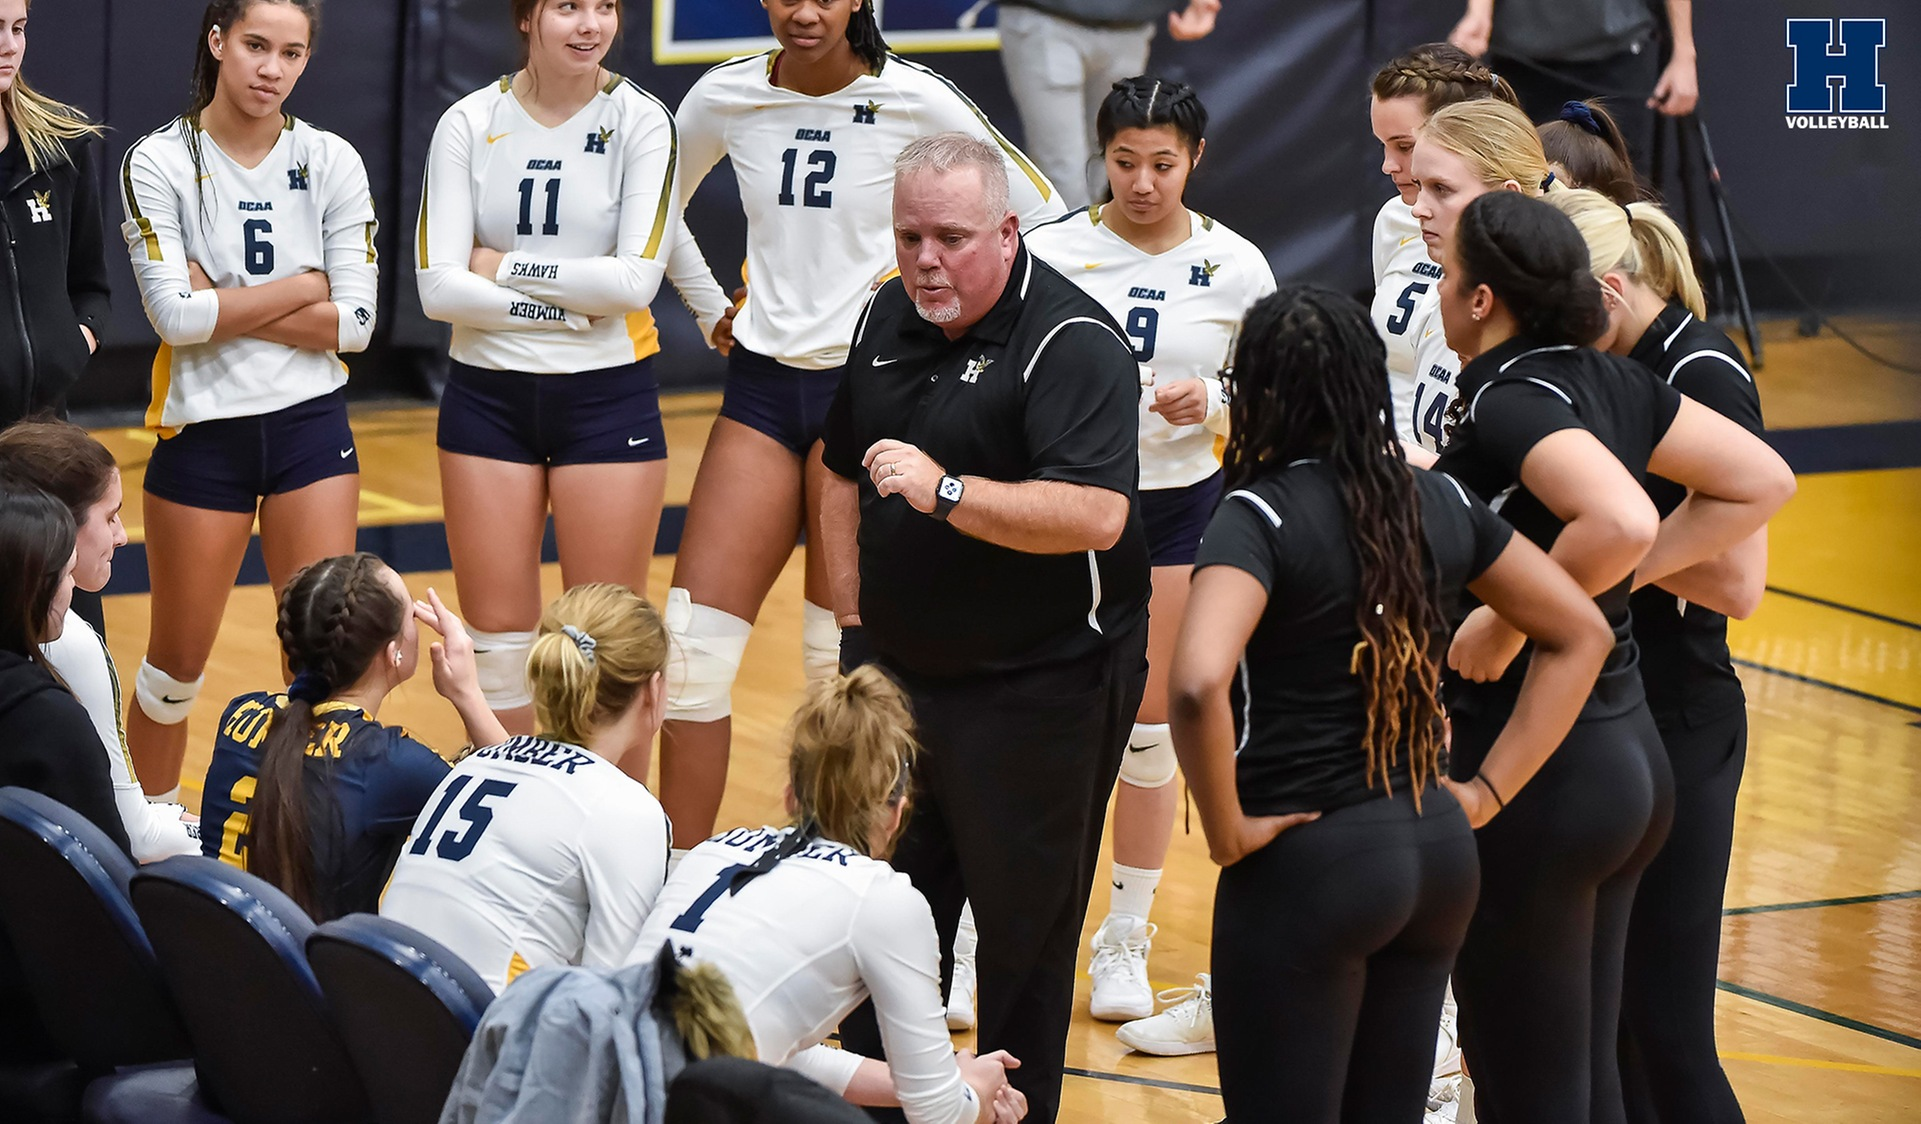 Women's Volleyball Rallies to Beat No. 14 St. Clair, 3-1